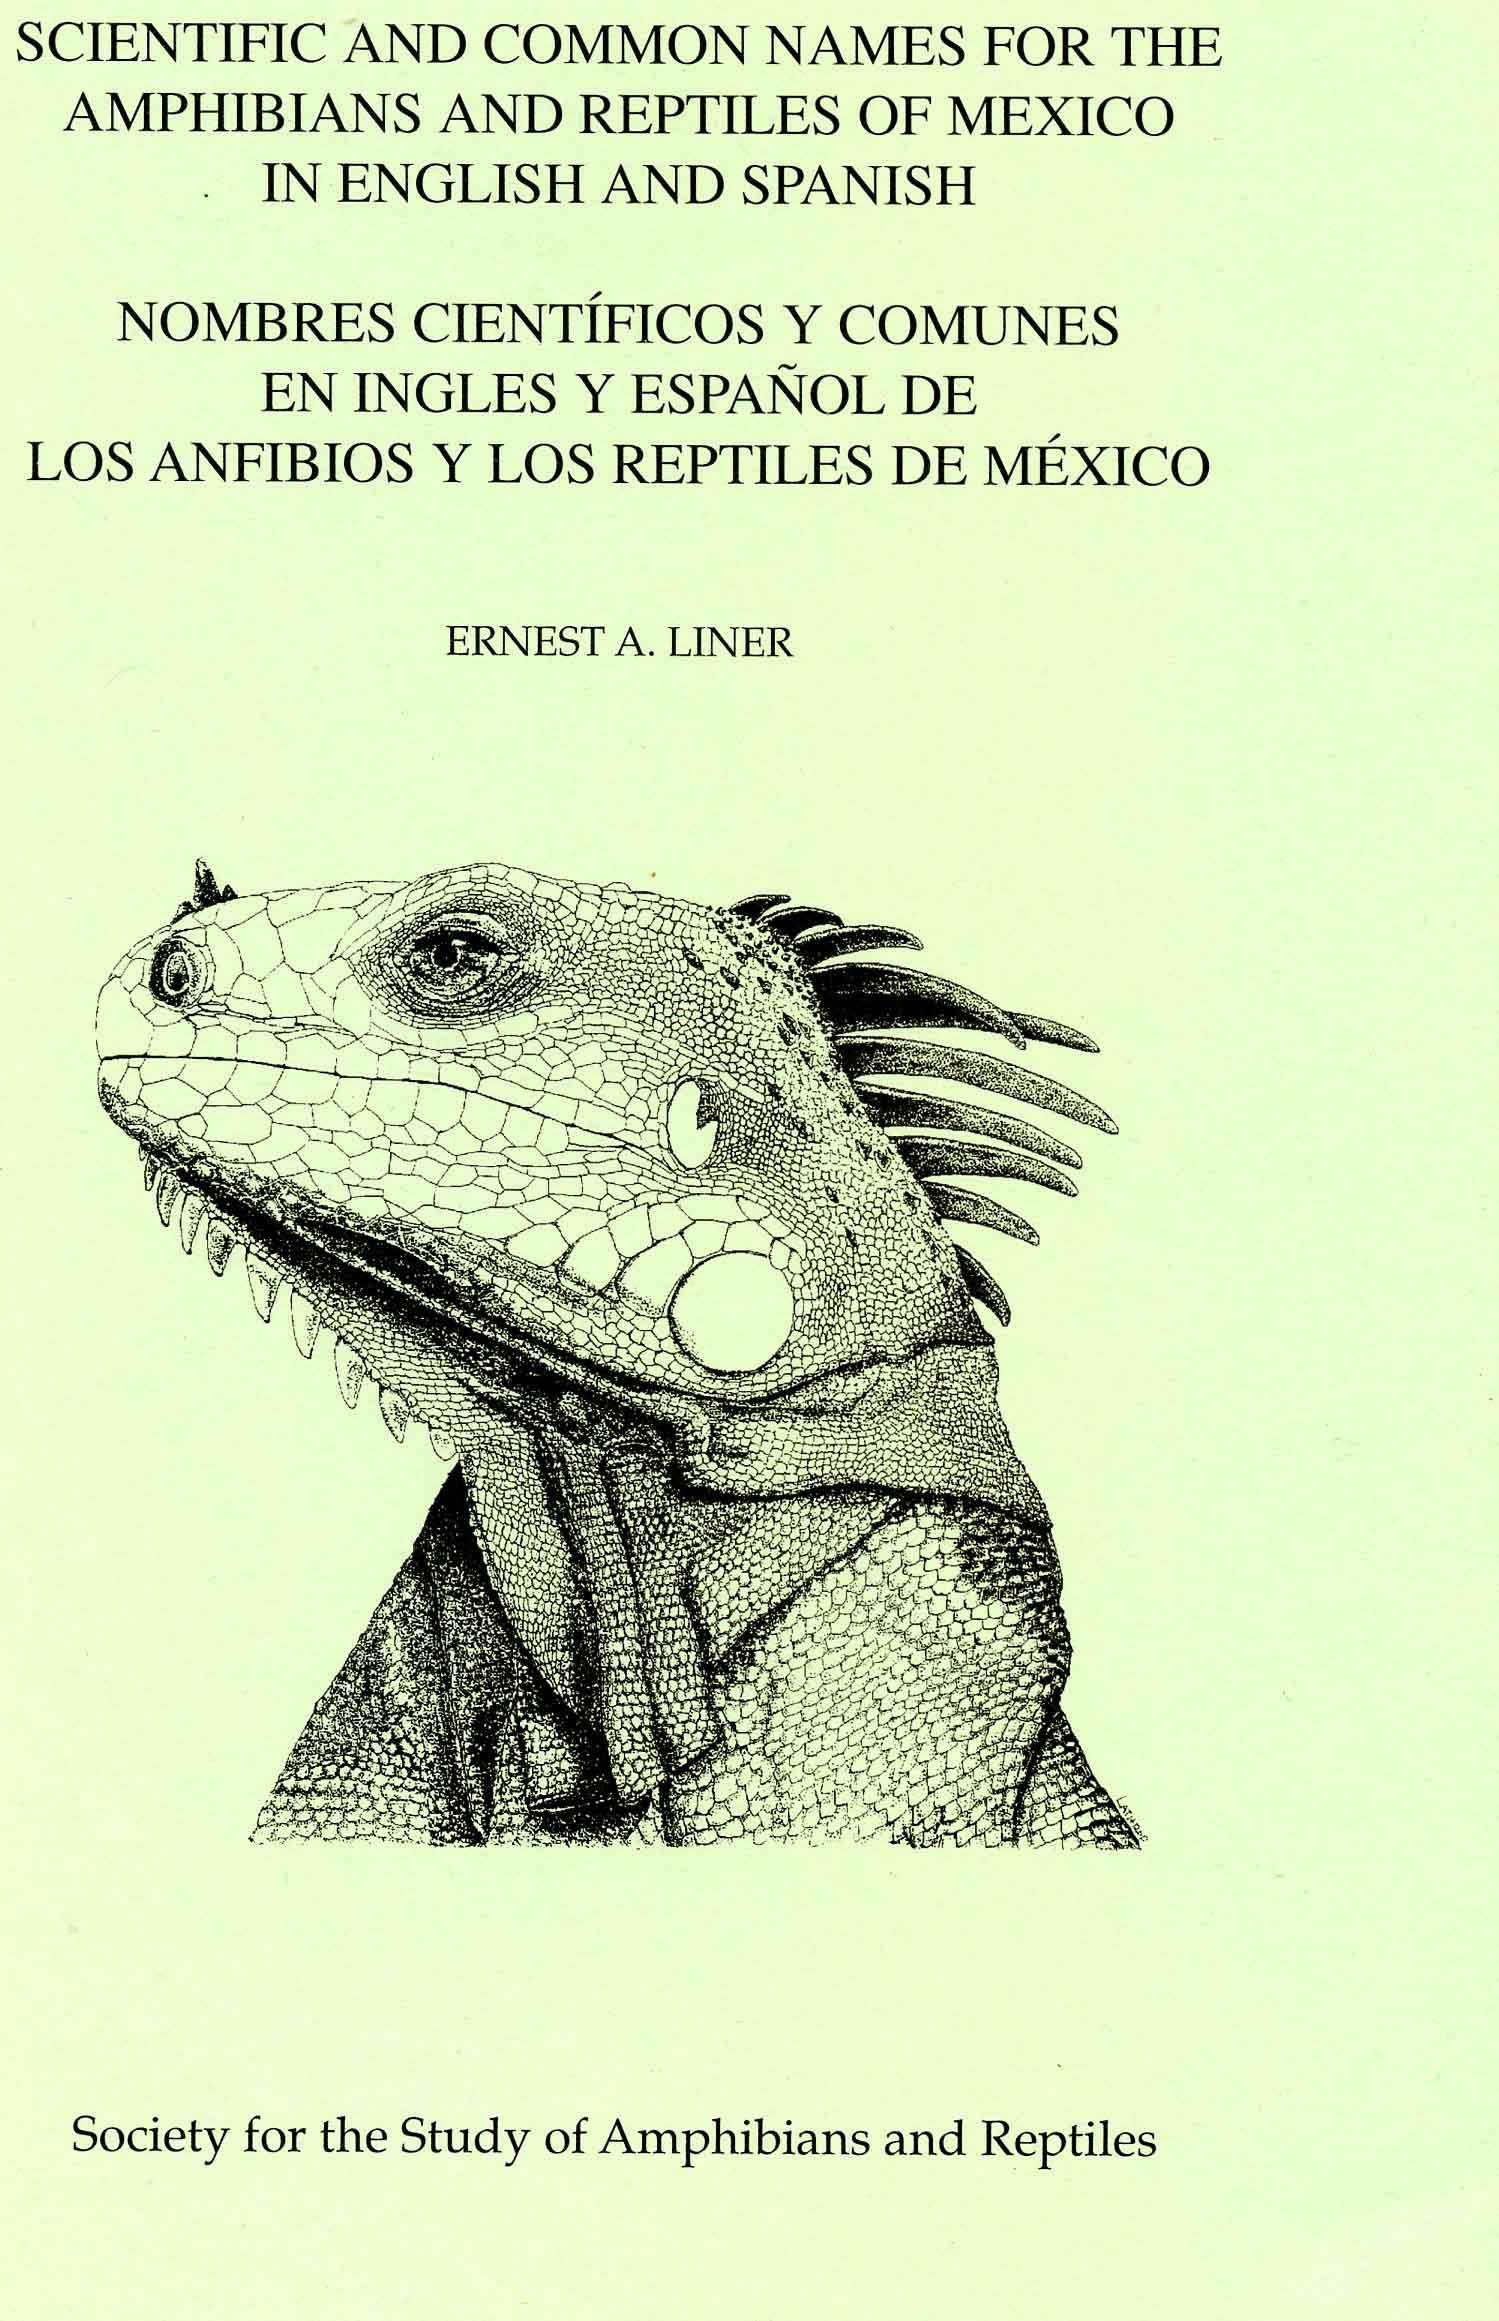 Image for Scientific and Common Names for the Amphibians and Reptiles of Mexico in English and Spanish / Nombres cientificos y Comunes en Ingles y Eapanol de los Anfibios y los Reptiles de Mexico.